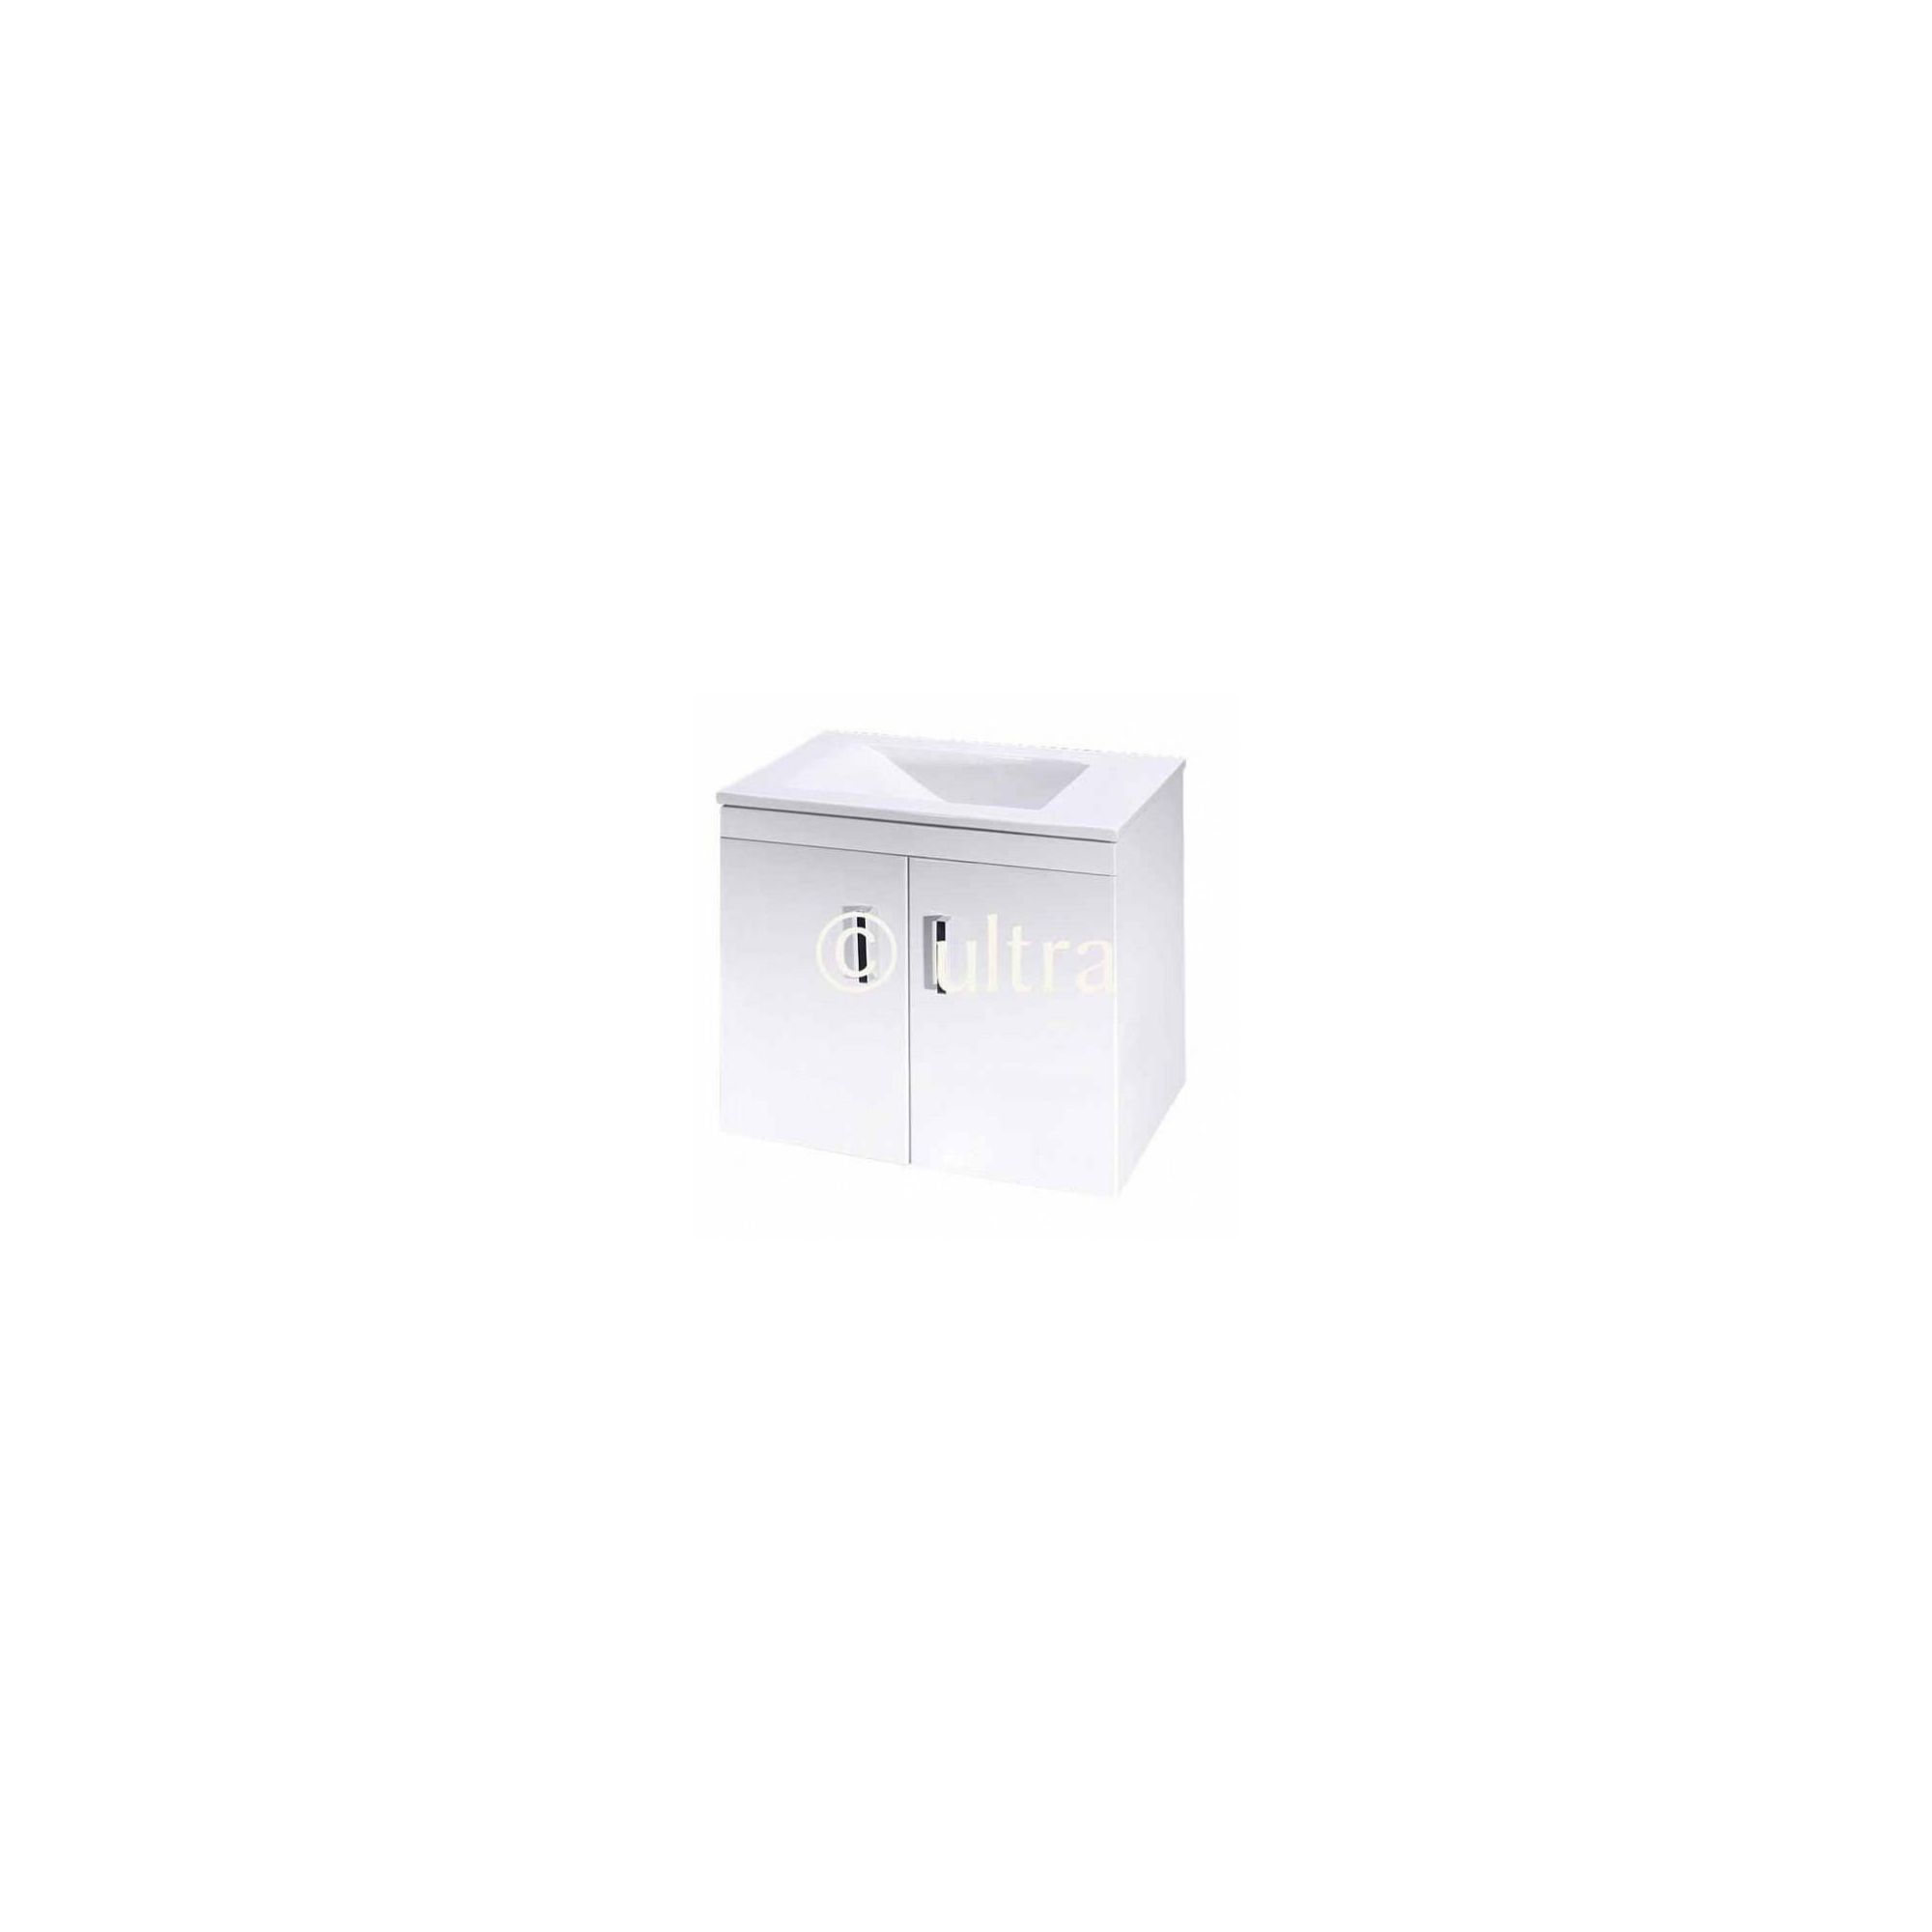 Ultra Liberty White Wall Mounted 2 Door Vanity Unit and Basin 450mm High x 550mm Wide